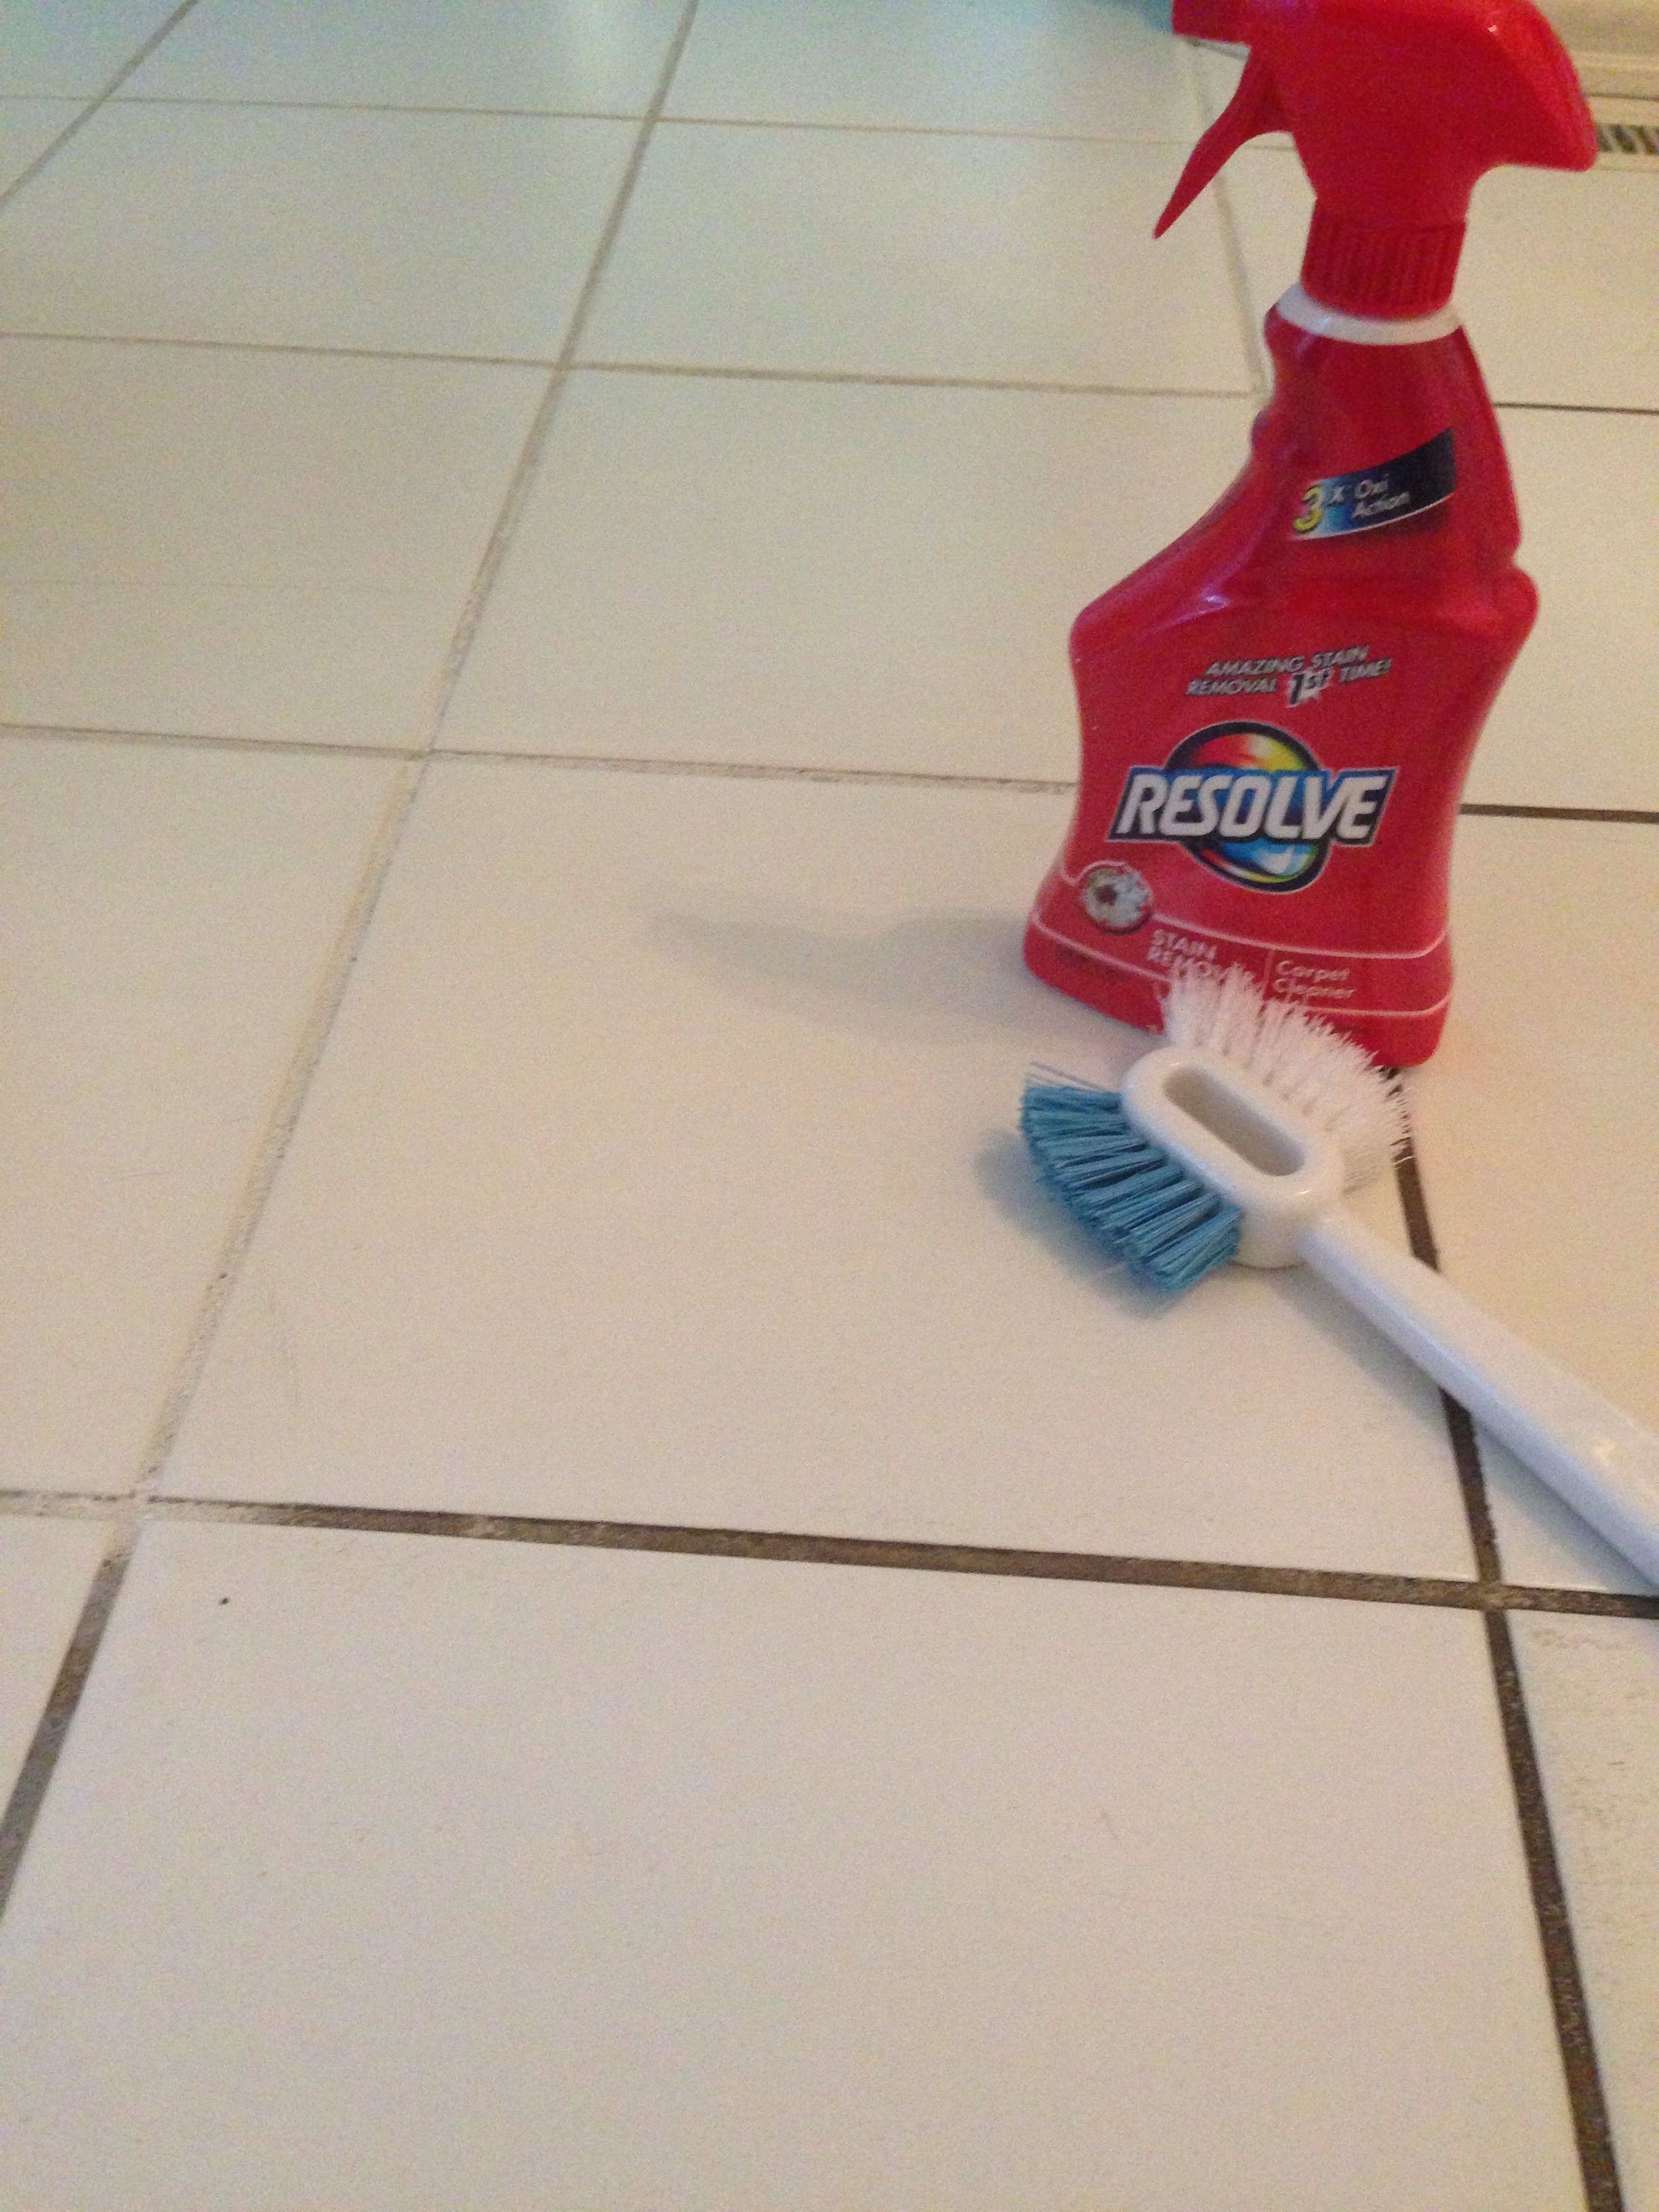 Resolve carpet cleaner to clean grout hydrogen peroxide grout and i have been wanting to clean the grout between our kitchen tiles for the longest time dailygadgetfo Gallery